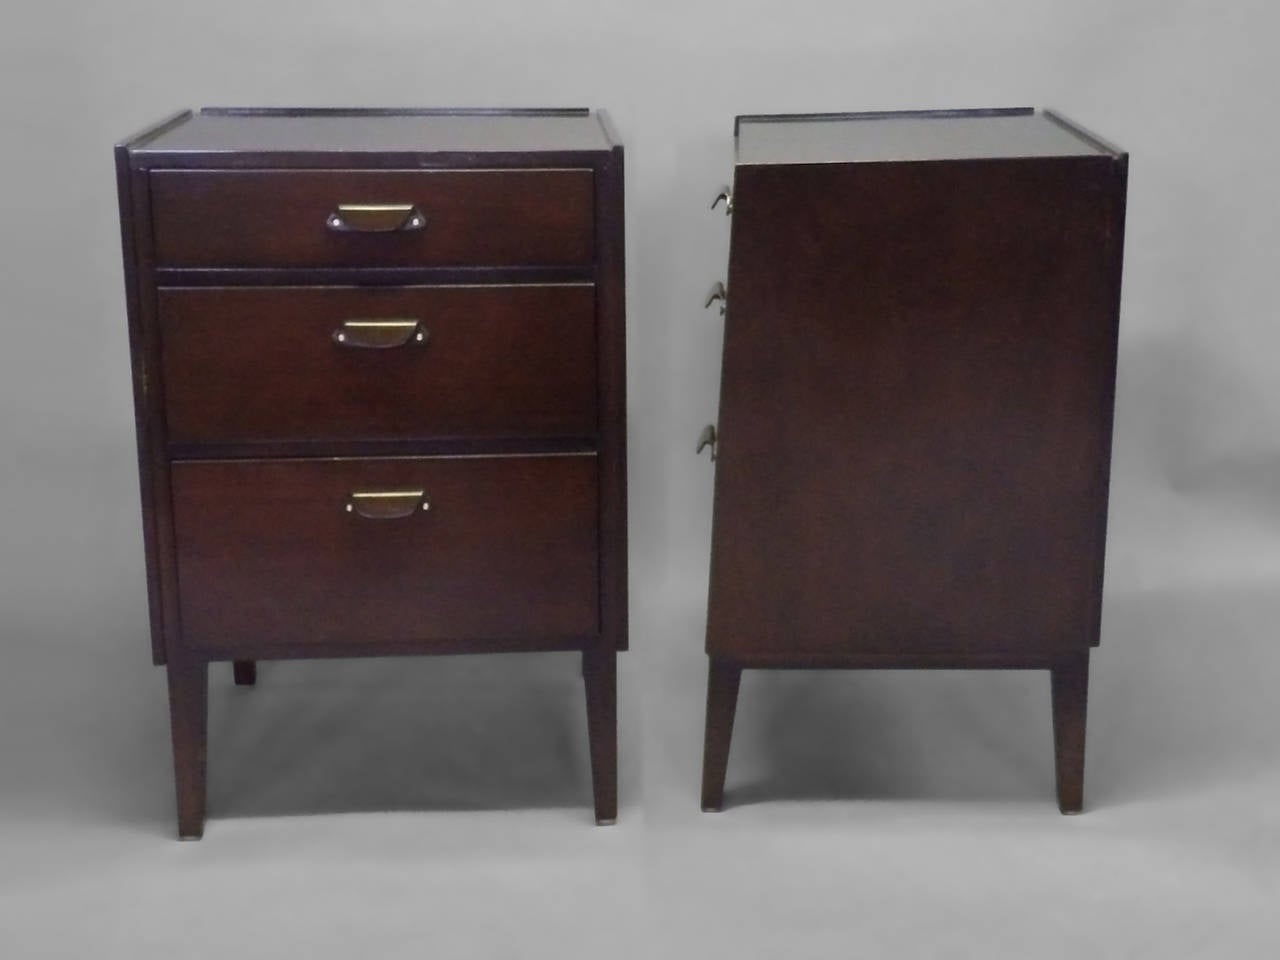 Pair of Edward Wormley for Dunbar angle front nightstands.